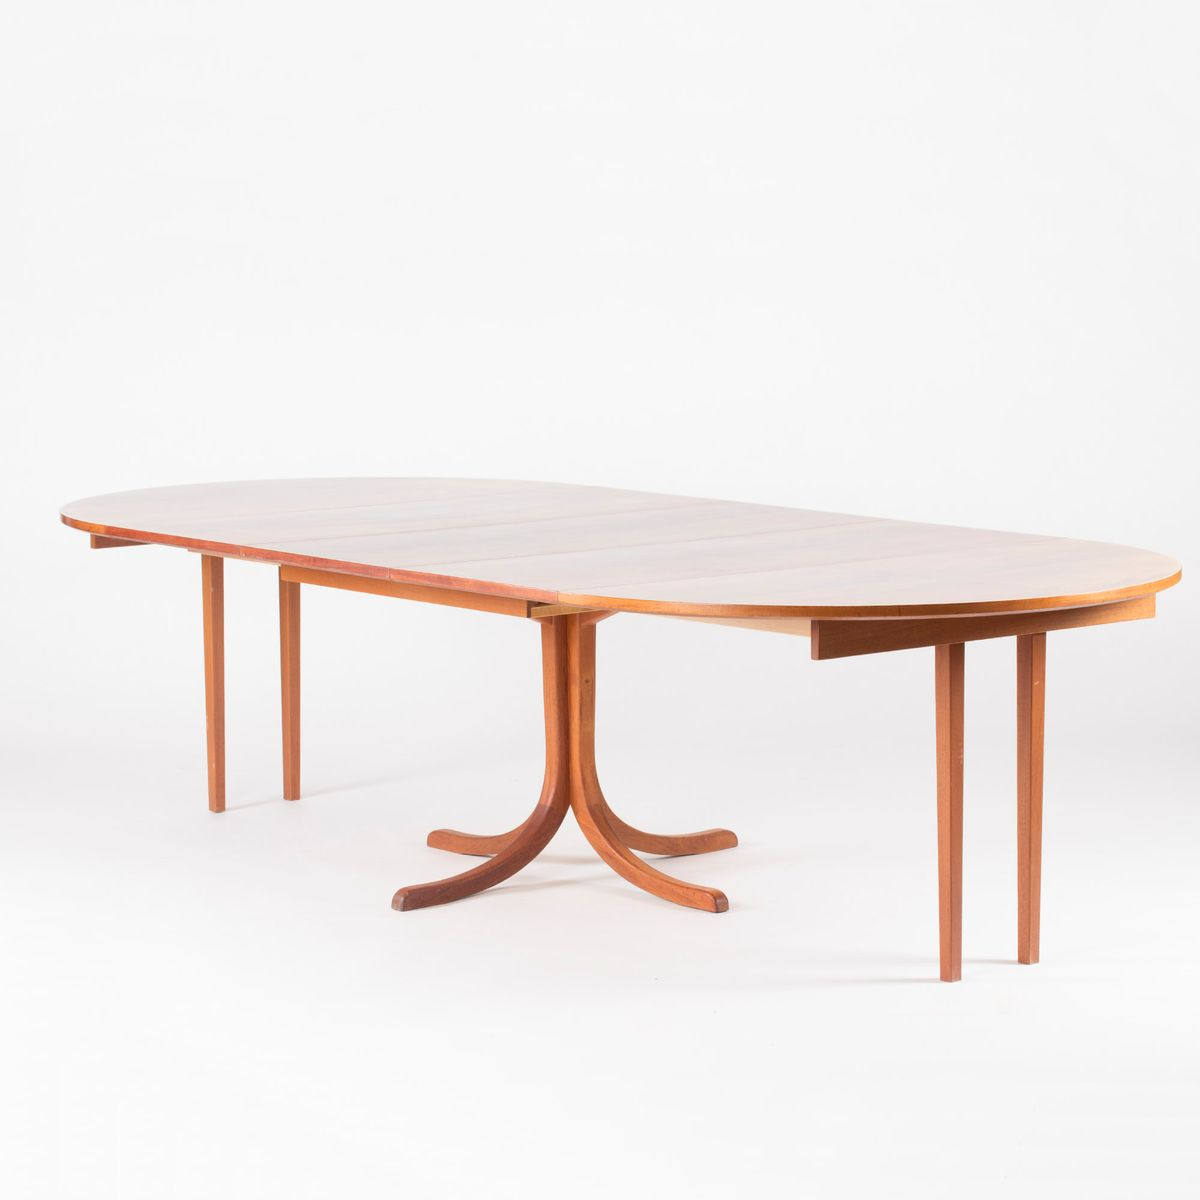 Extendable Mahogany Dining Table by Josef Frank for  : extendable mahogany dining table by josef frank for svenskt tenn 1970s 4 from www.pamono.com size 1200 x 1200 jpeg 34kB